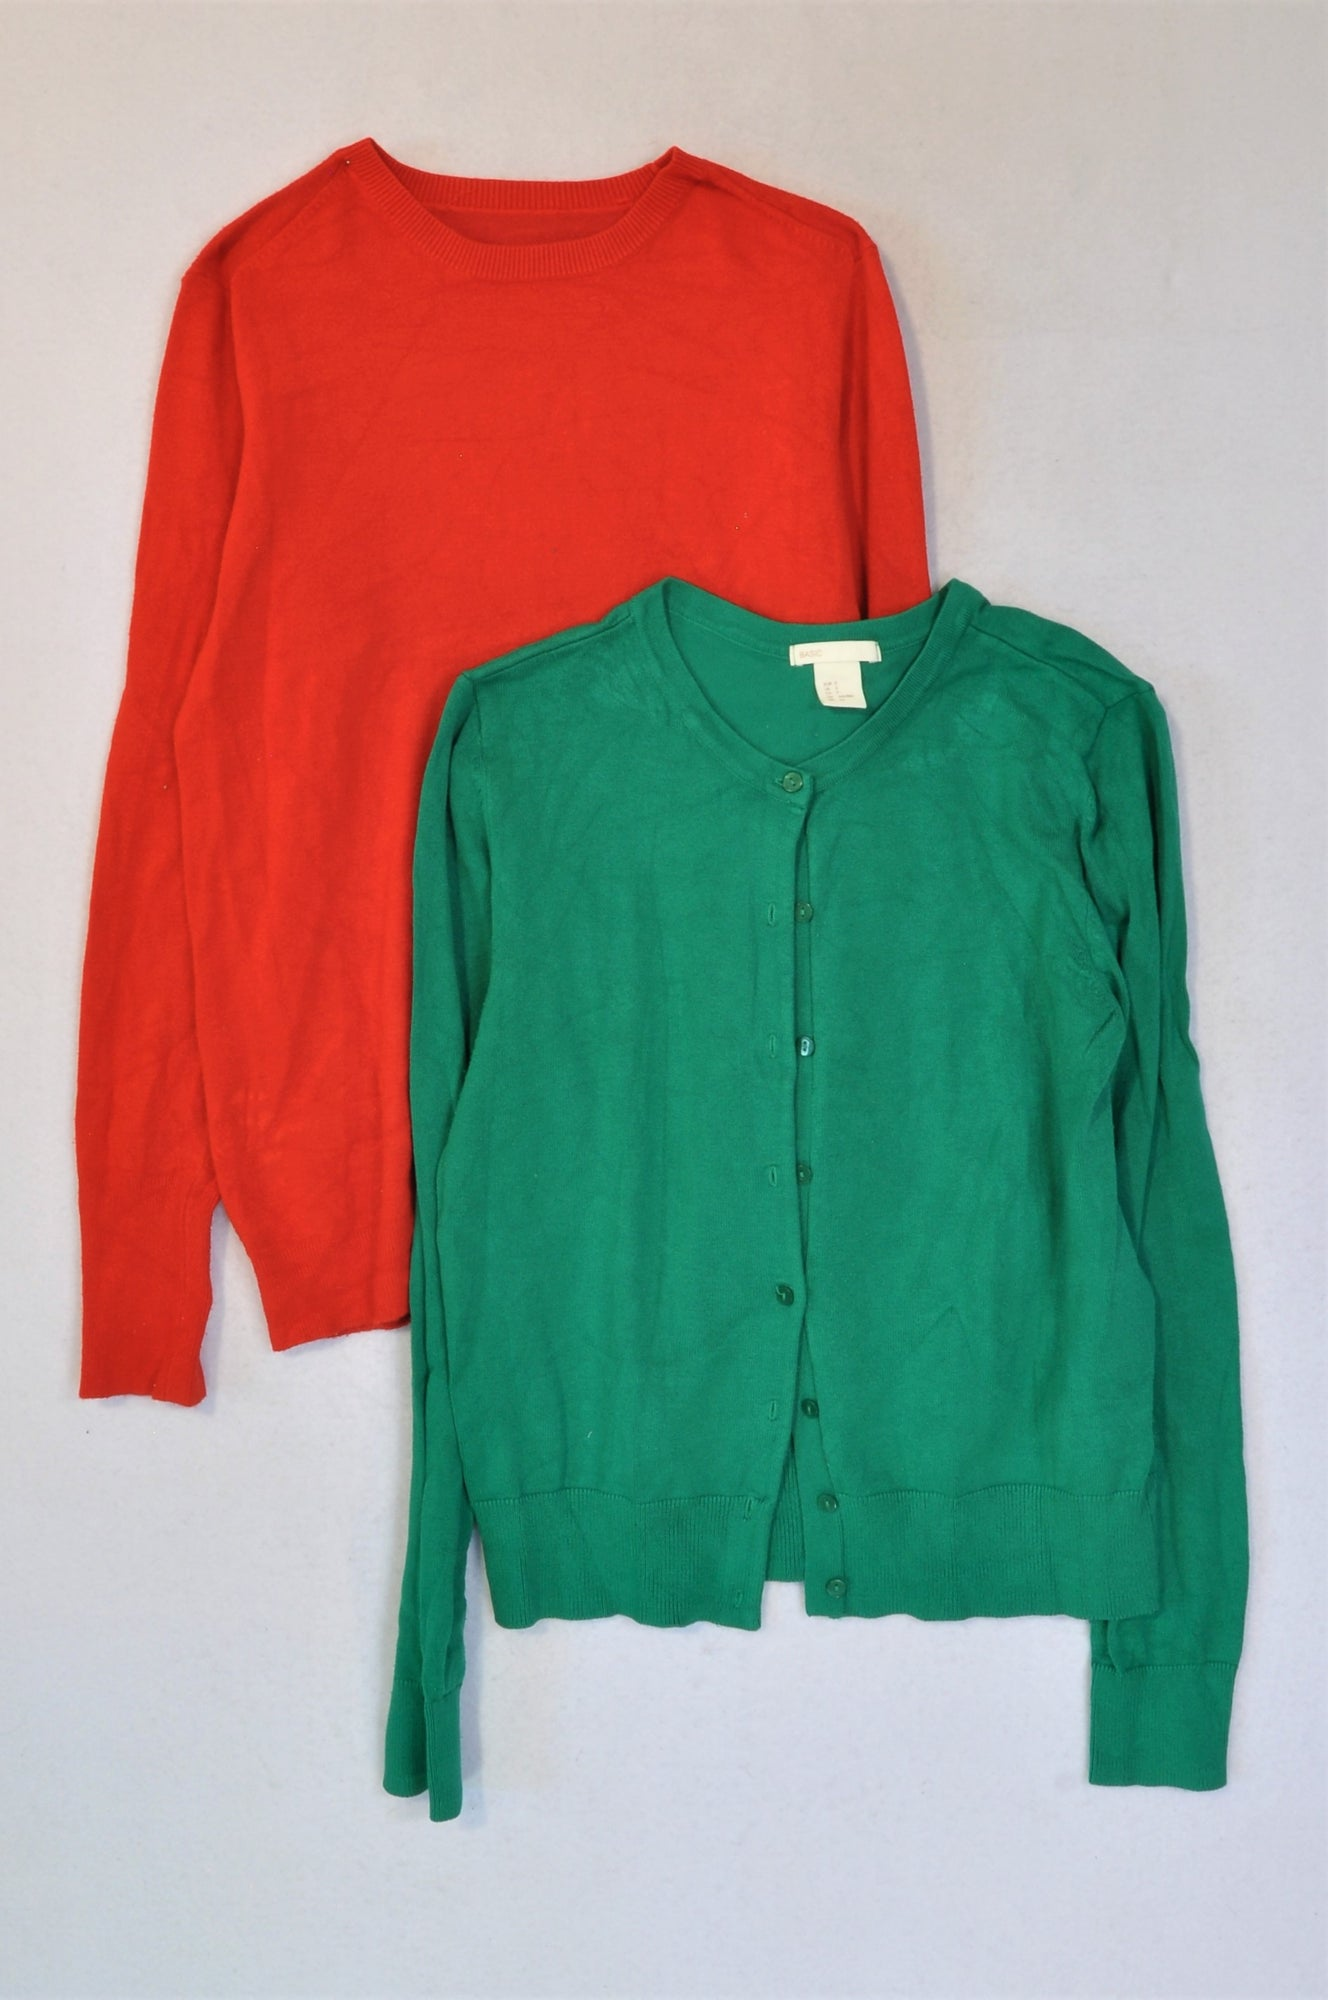 H&M Set Of 2 Red And Green Jersey Women Size 8